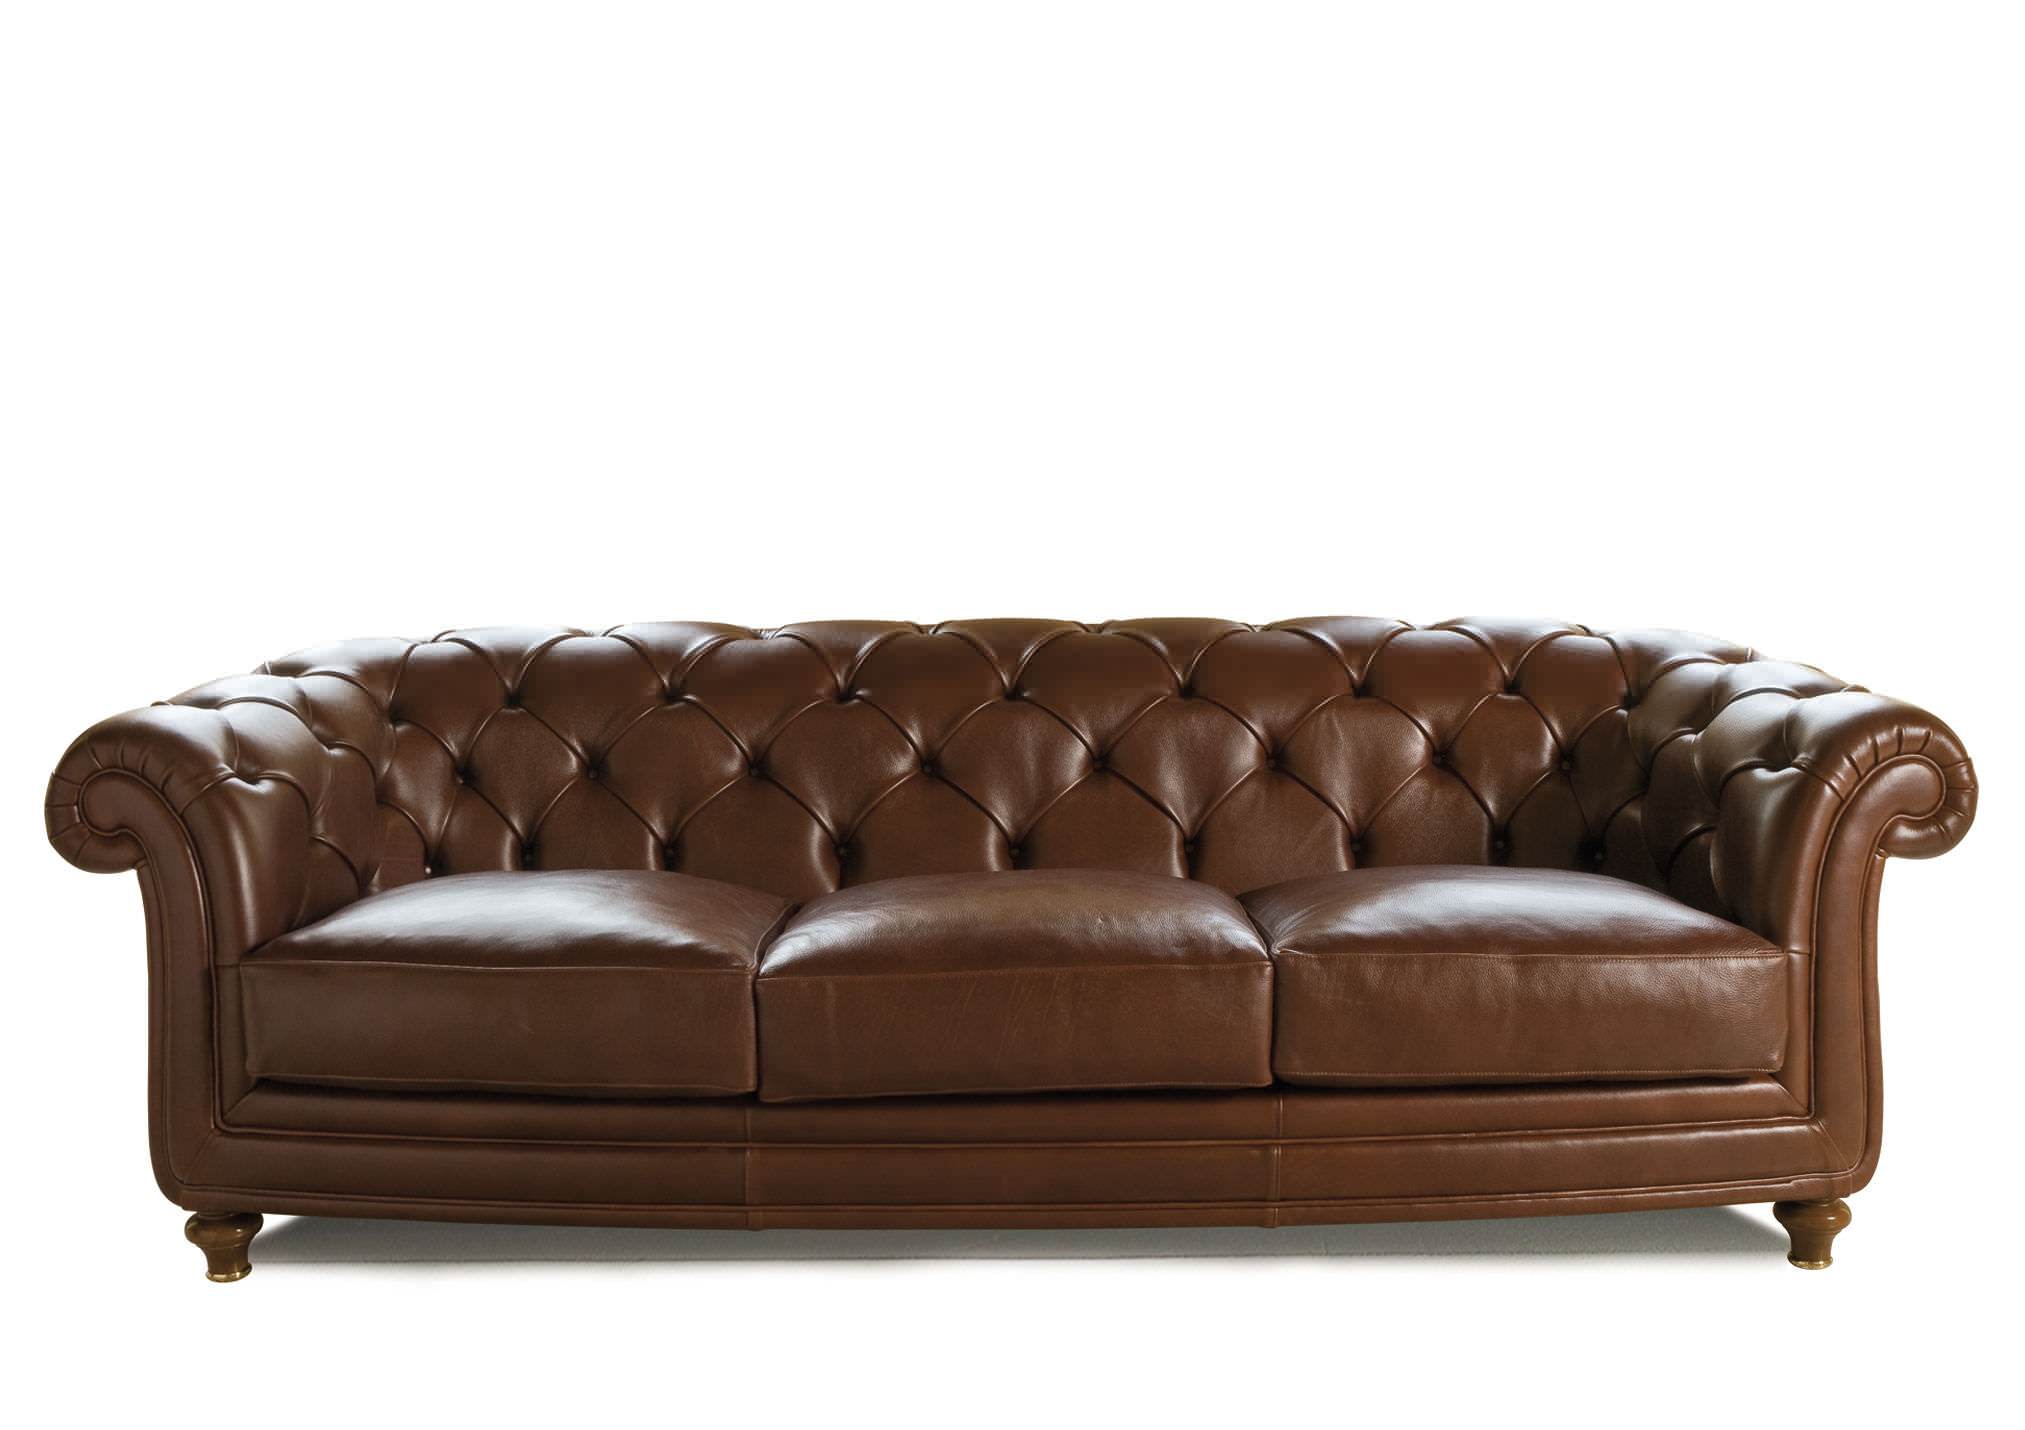 Chesterfield Sofa Leather Fabric 3 Seater